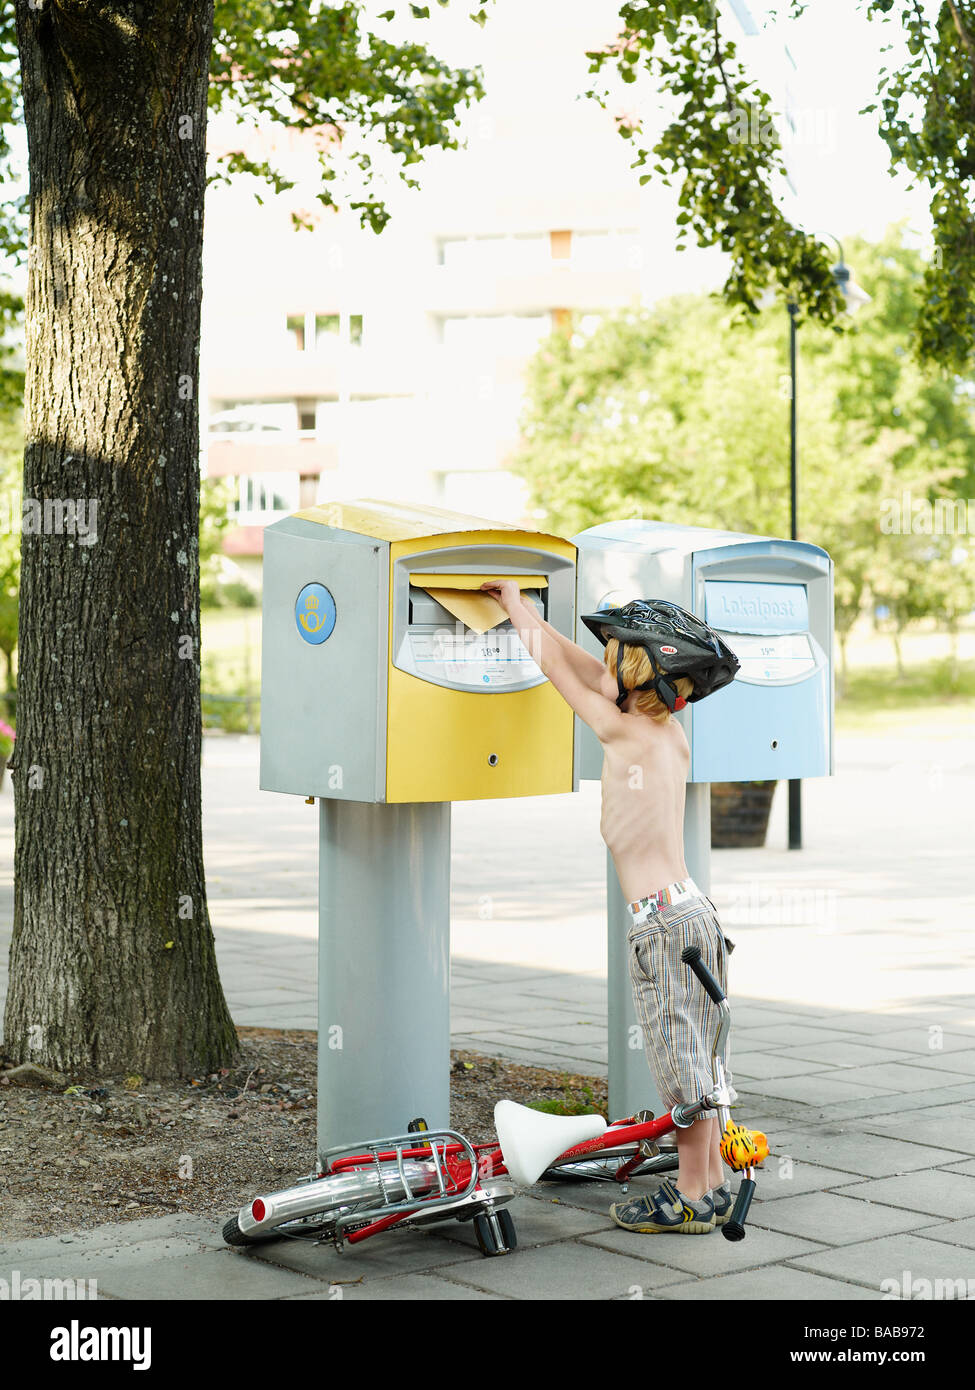 A boy dropping a letter into a box Sweden. - Stock Image